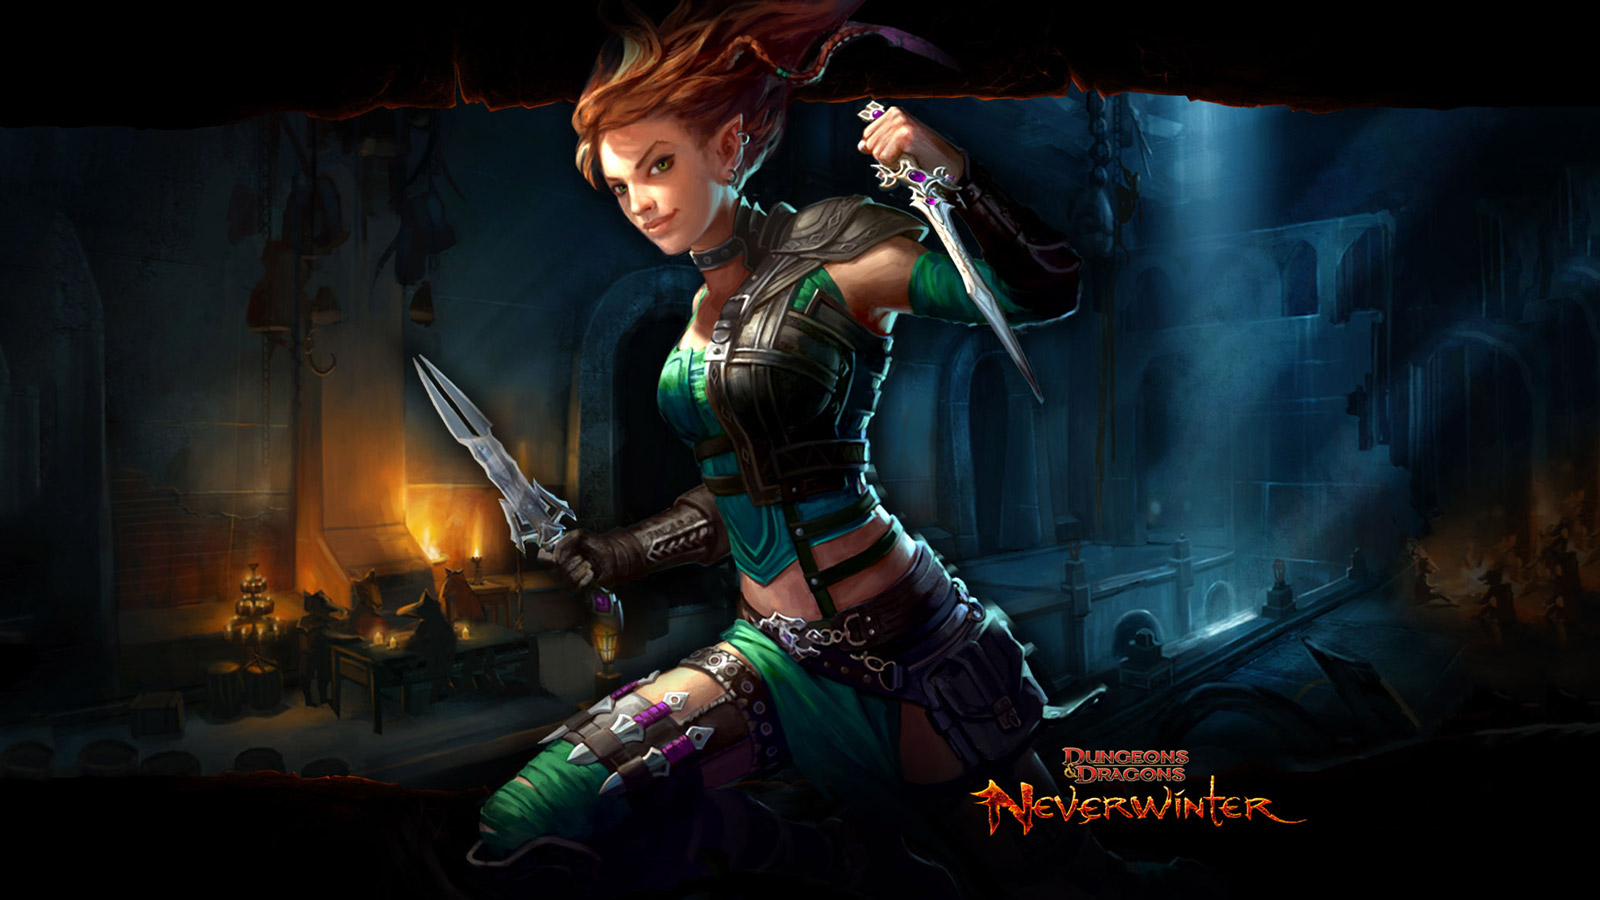 Neverwinter Wallpaper in 1600x900